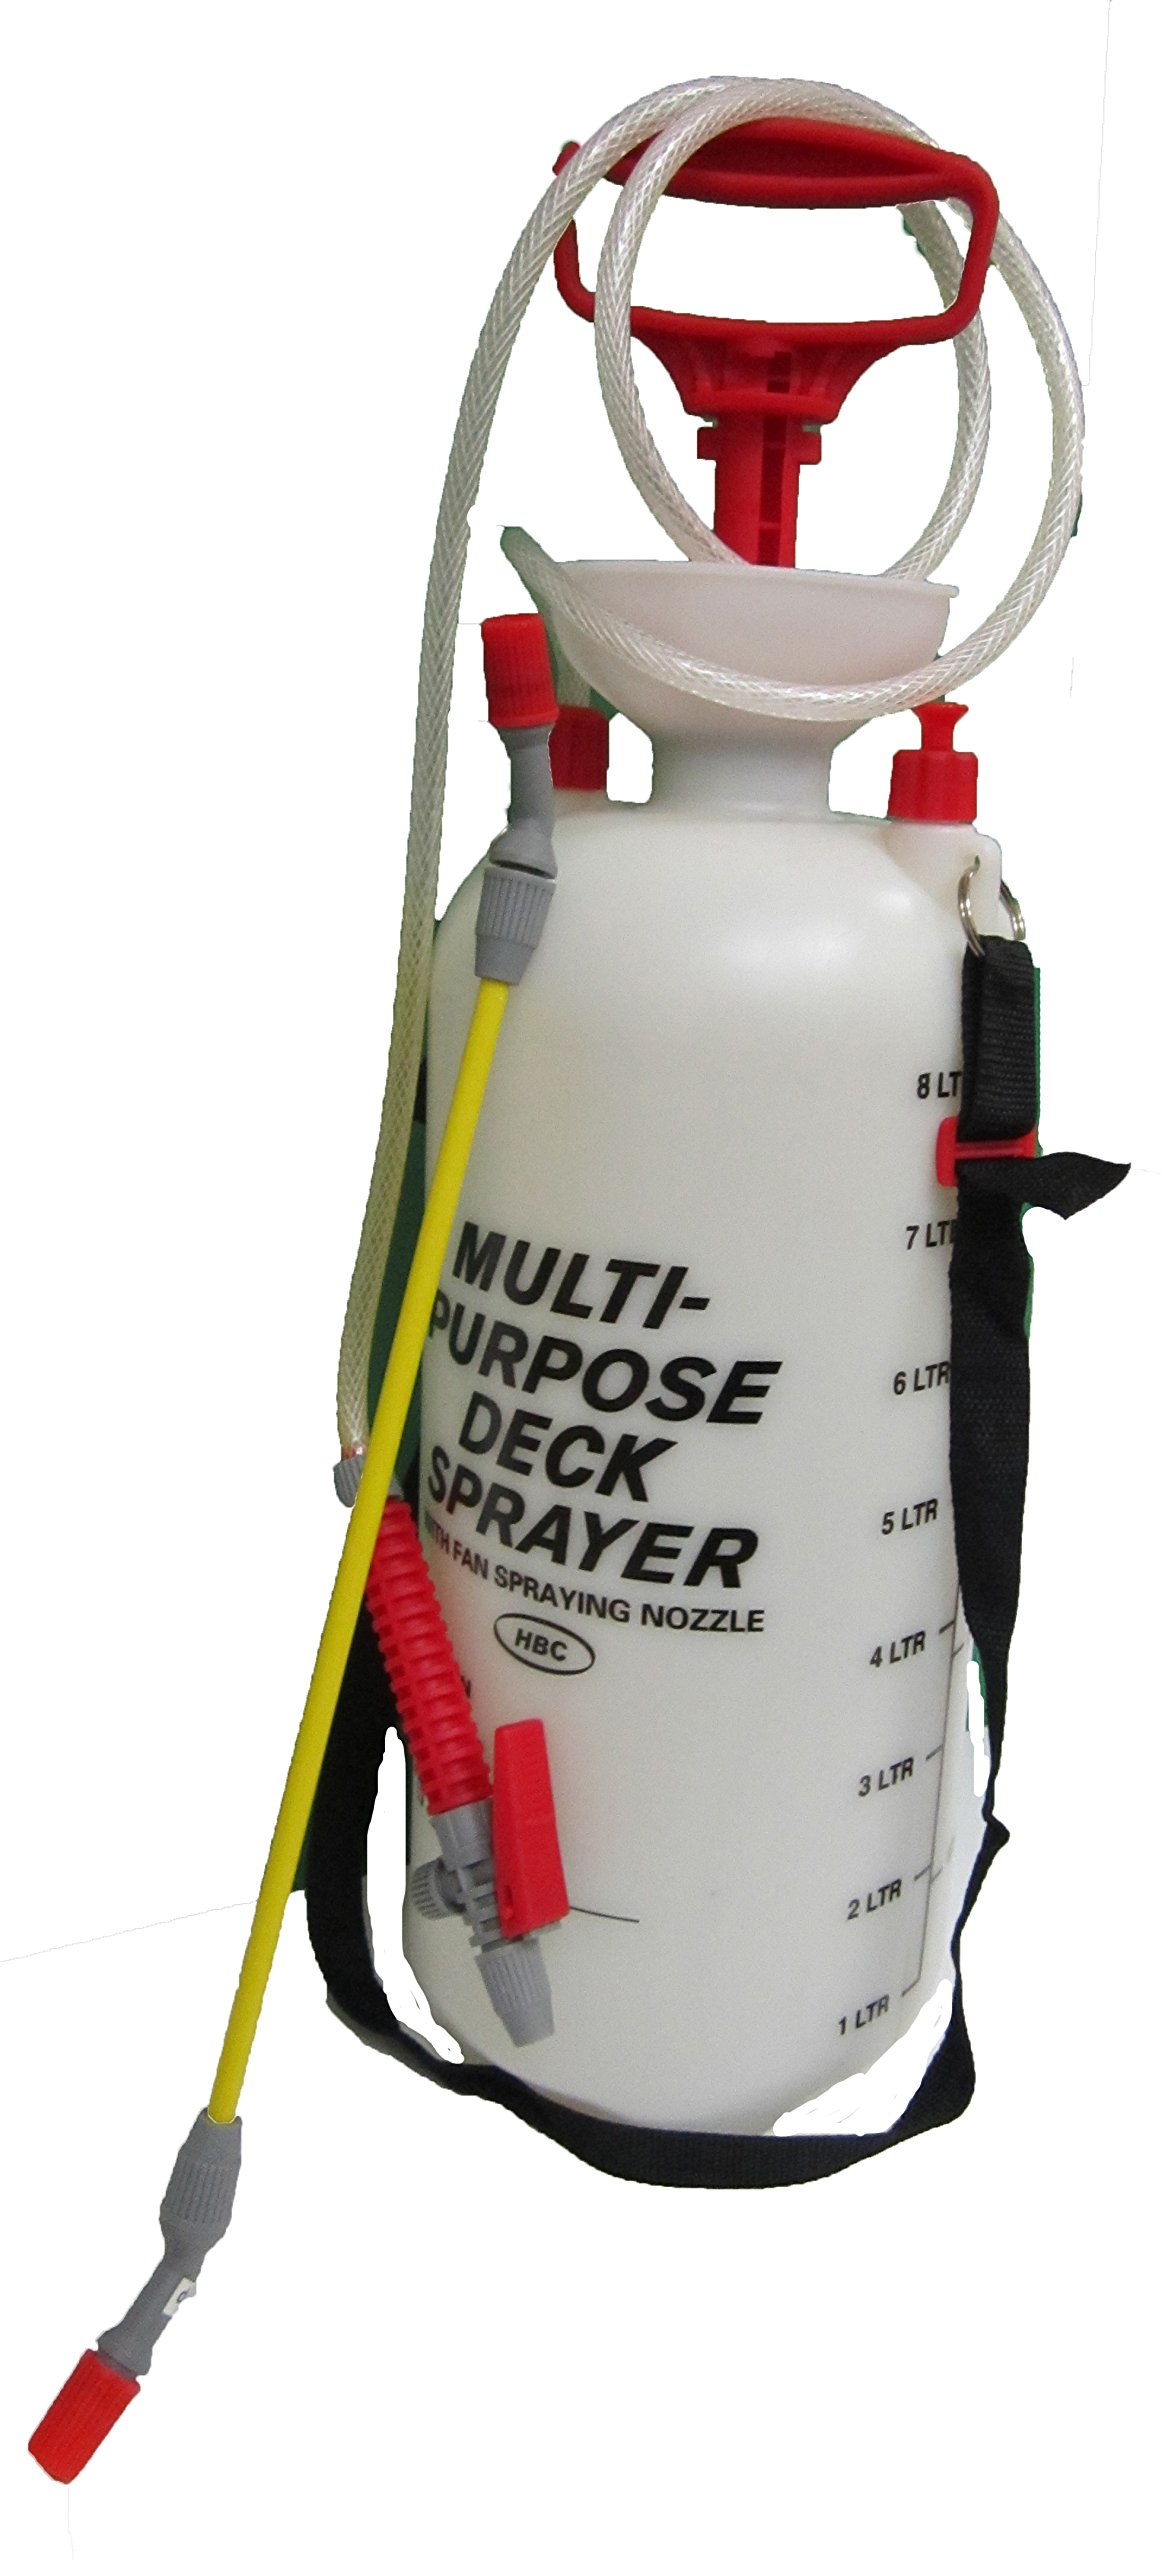 Pressure Sprayer, Fast and Easy to Pump, Great for Misting Plants, Cooling Off, and Many Other Uses! Used with Any Brand of Pesticide, Insecticide, Deck Cleaner or Fertilizer. (2 Gallon/8L)